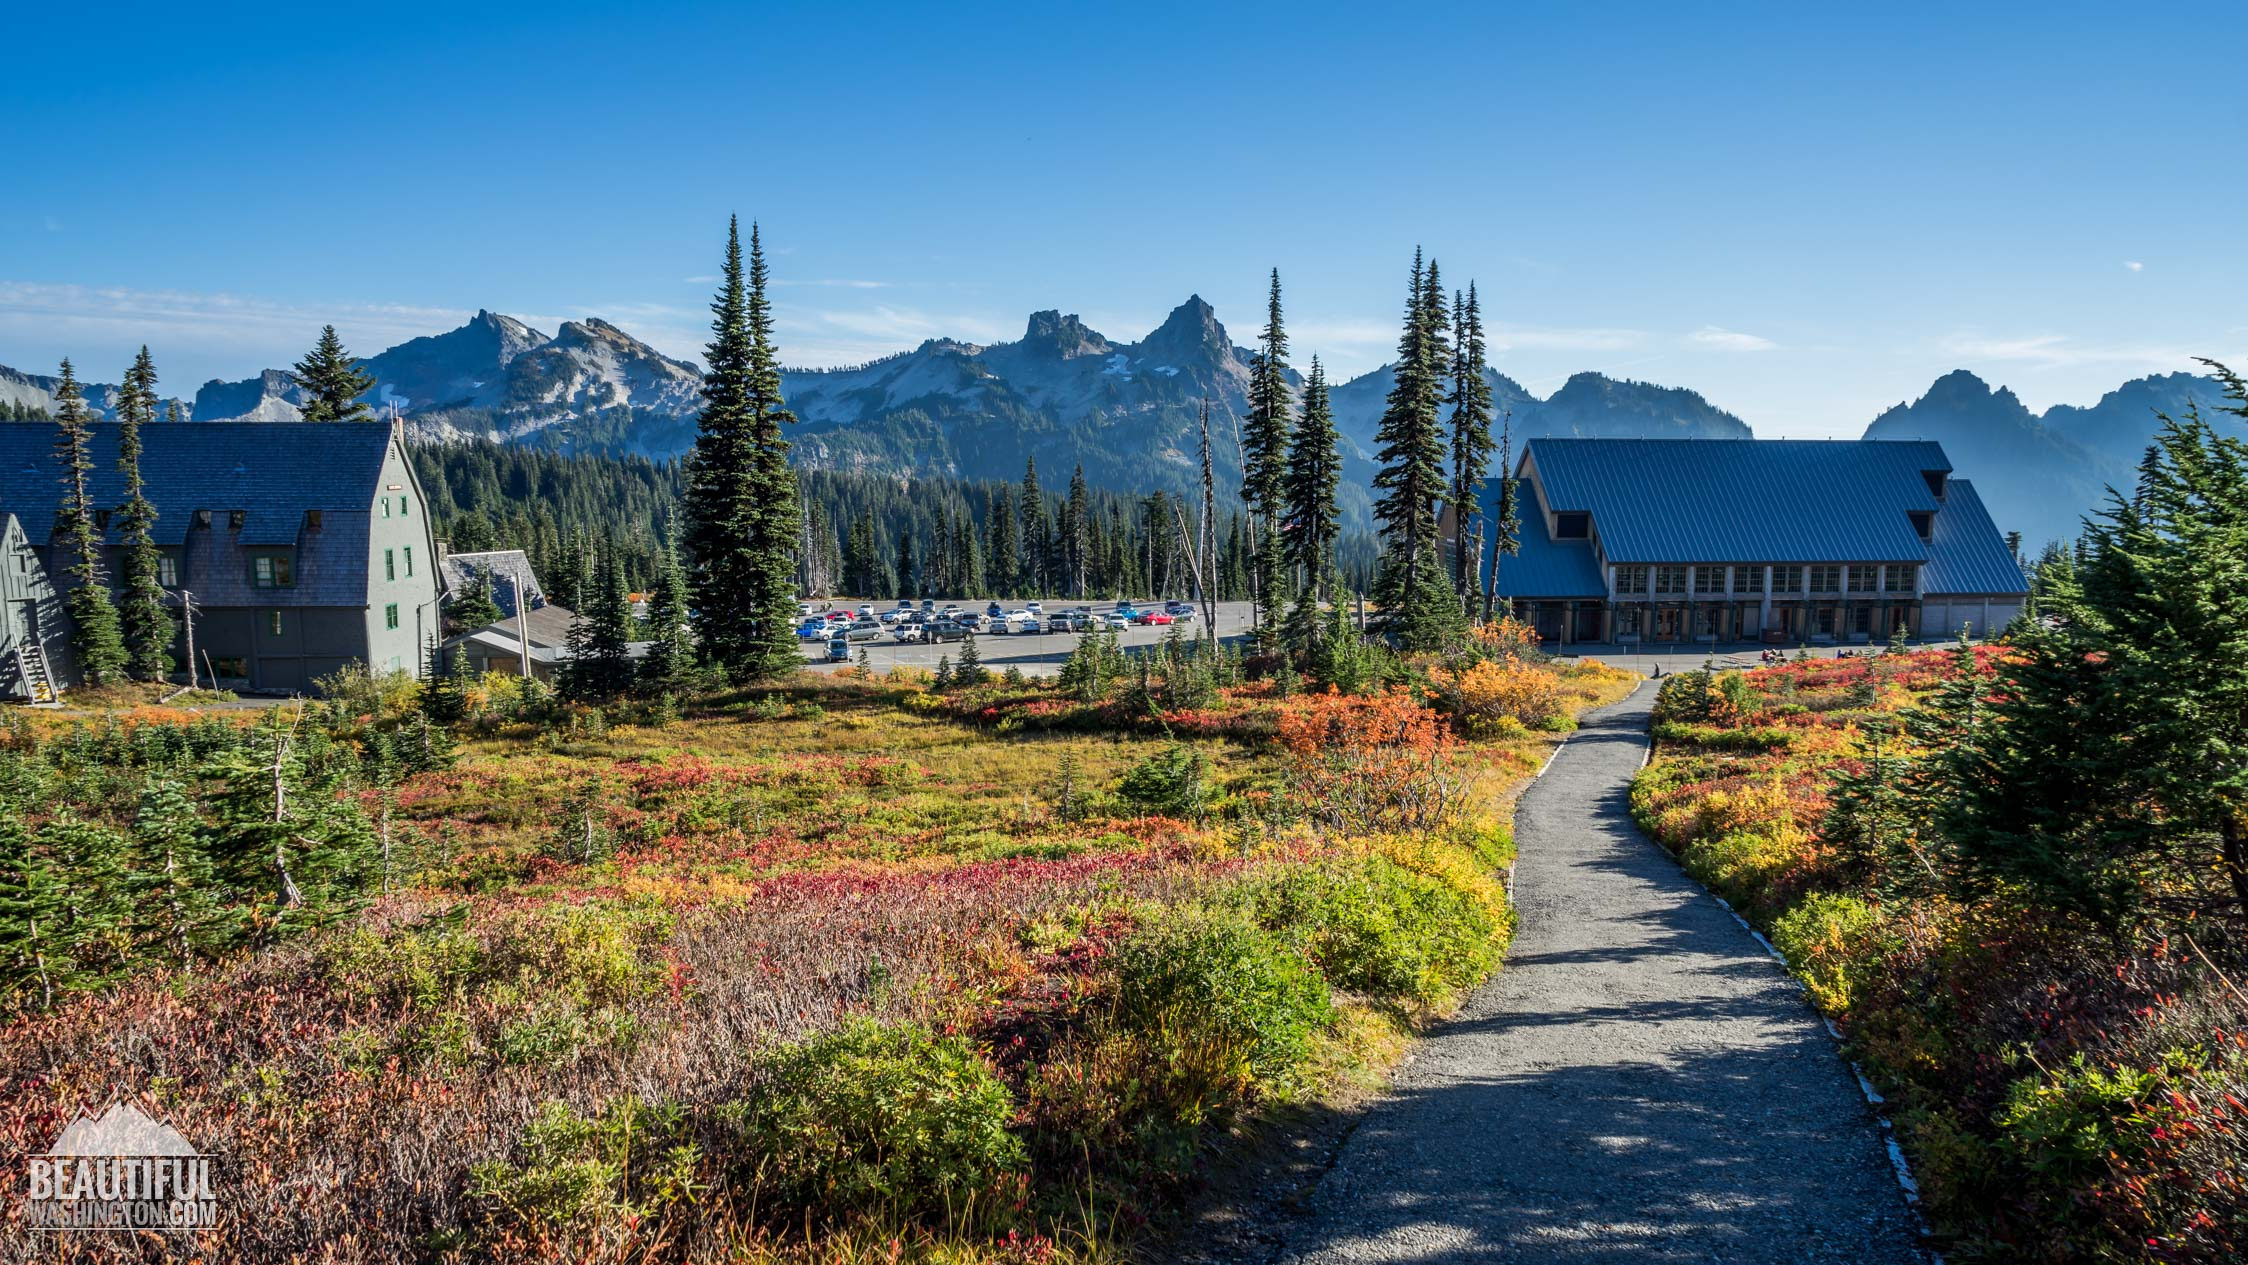 Photo from Mount Rainier National Park, Paradise Area, Henry M. Jackson Visitor Center